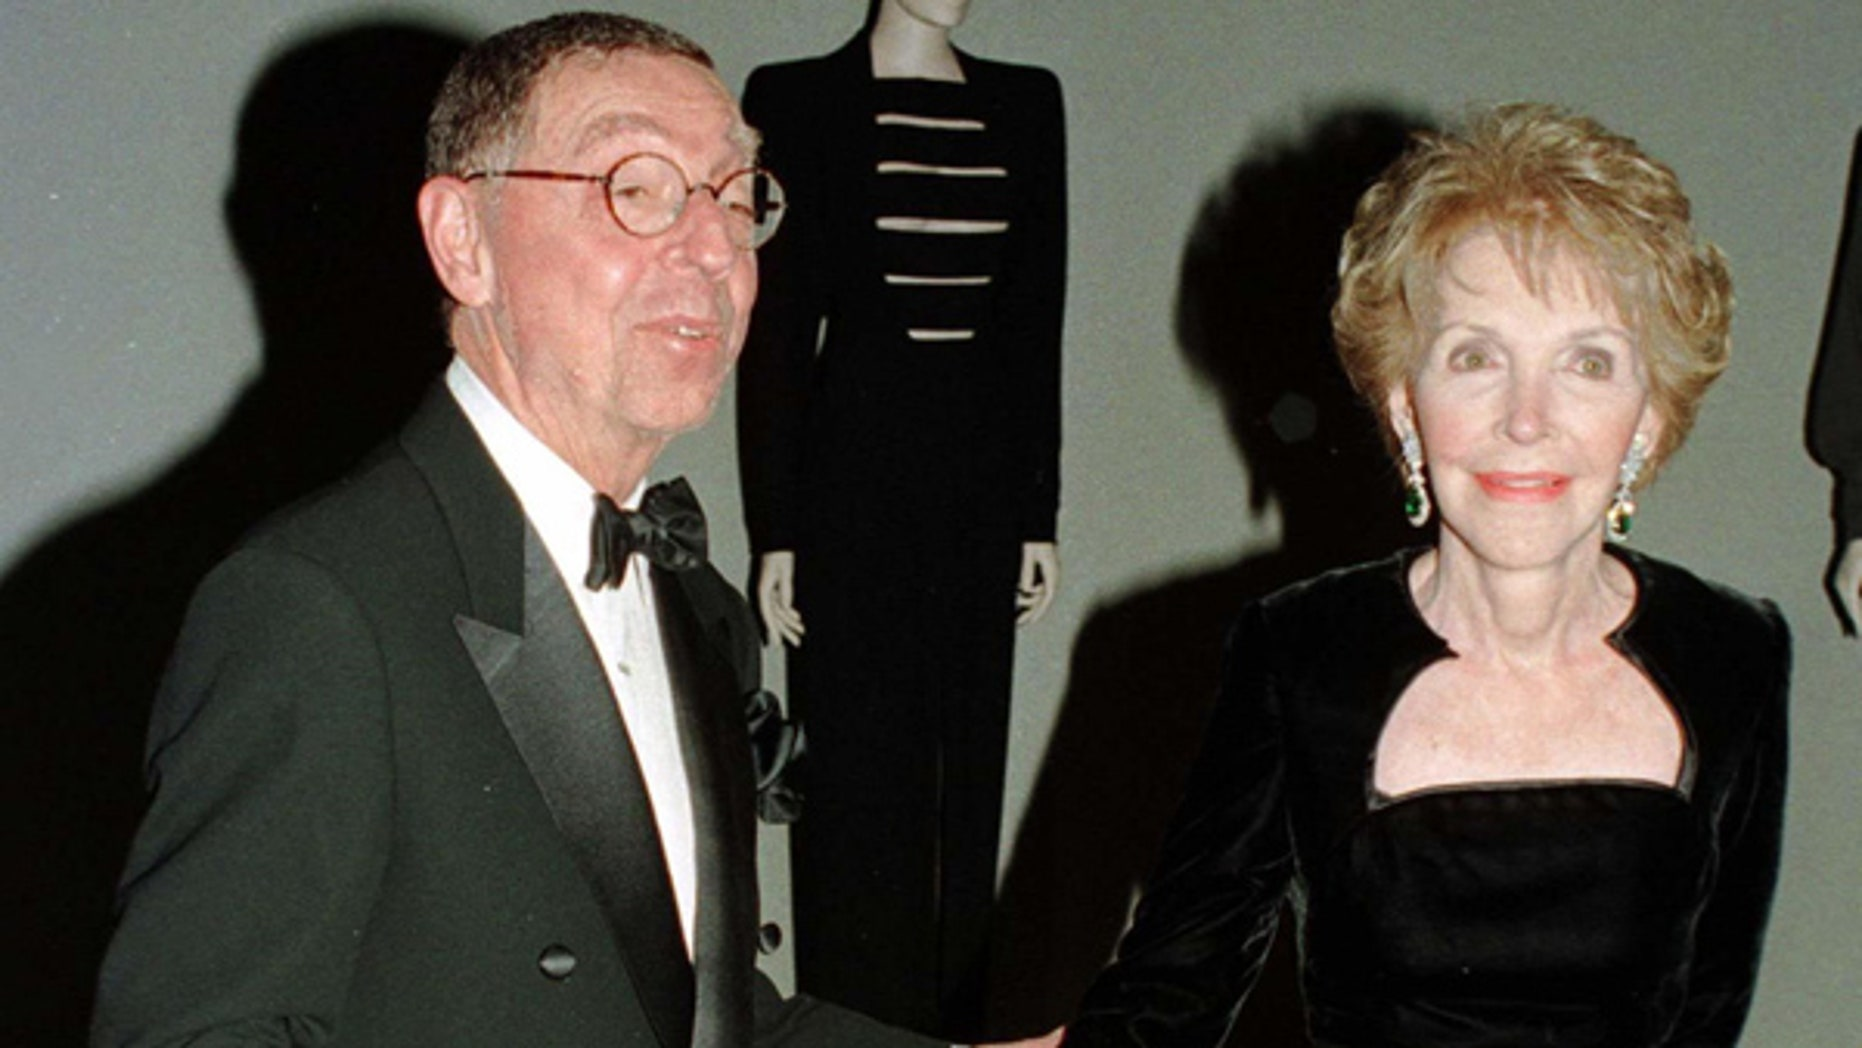 Former first lady Nancy Reagan and fashion designer James Galanos tour an exhibition of fashion designs by Galanos at the Los Angeles County Museum of Art during a reception March 25. Mrs. Reagan wore many Galanos gowns during her years at the the White House.